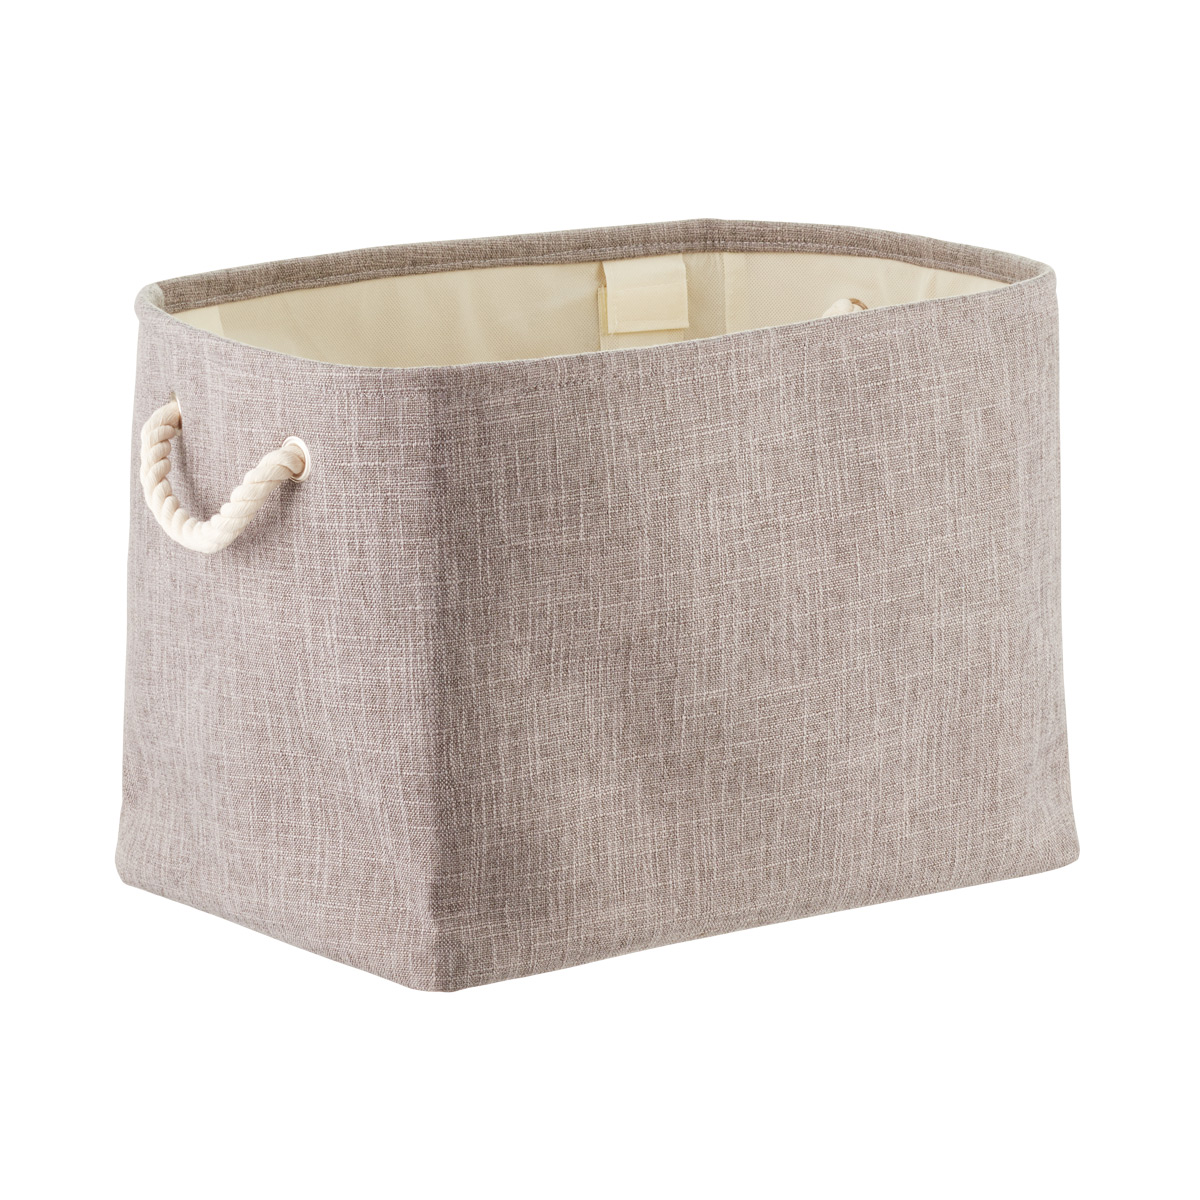 Grey Fabric Storage Bin with Rope Handles